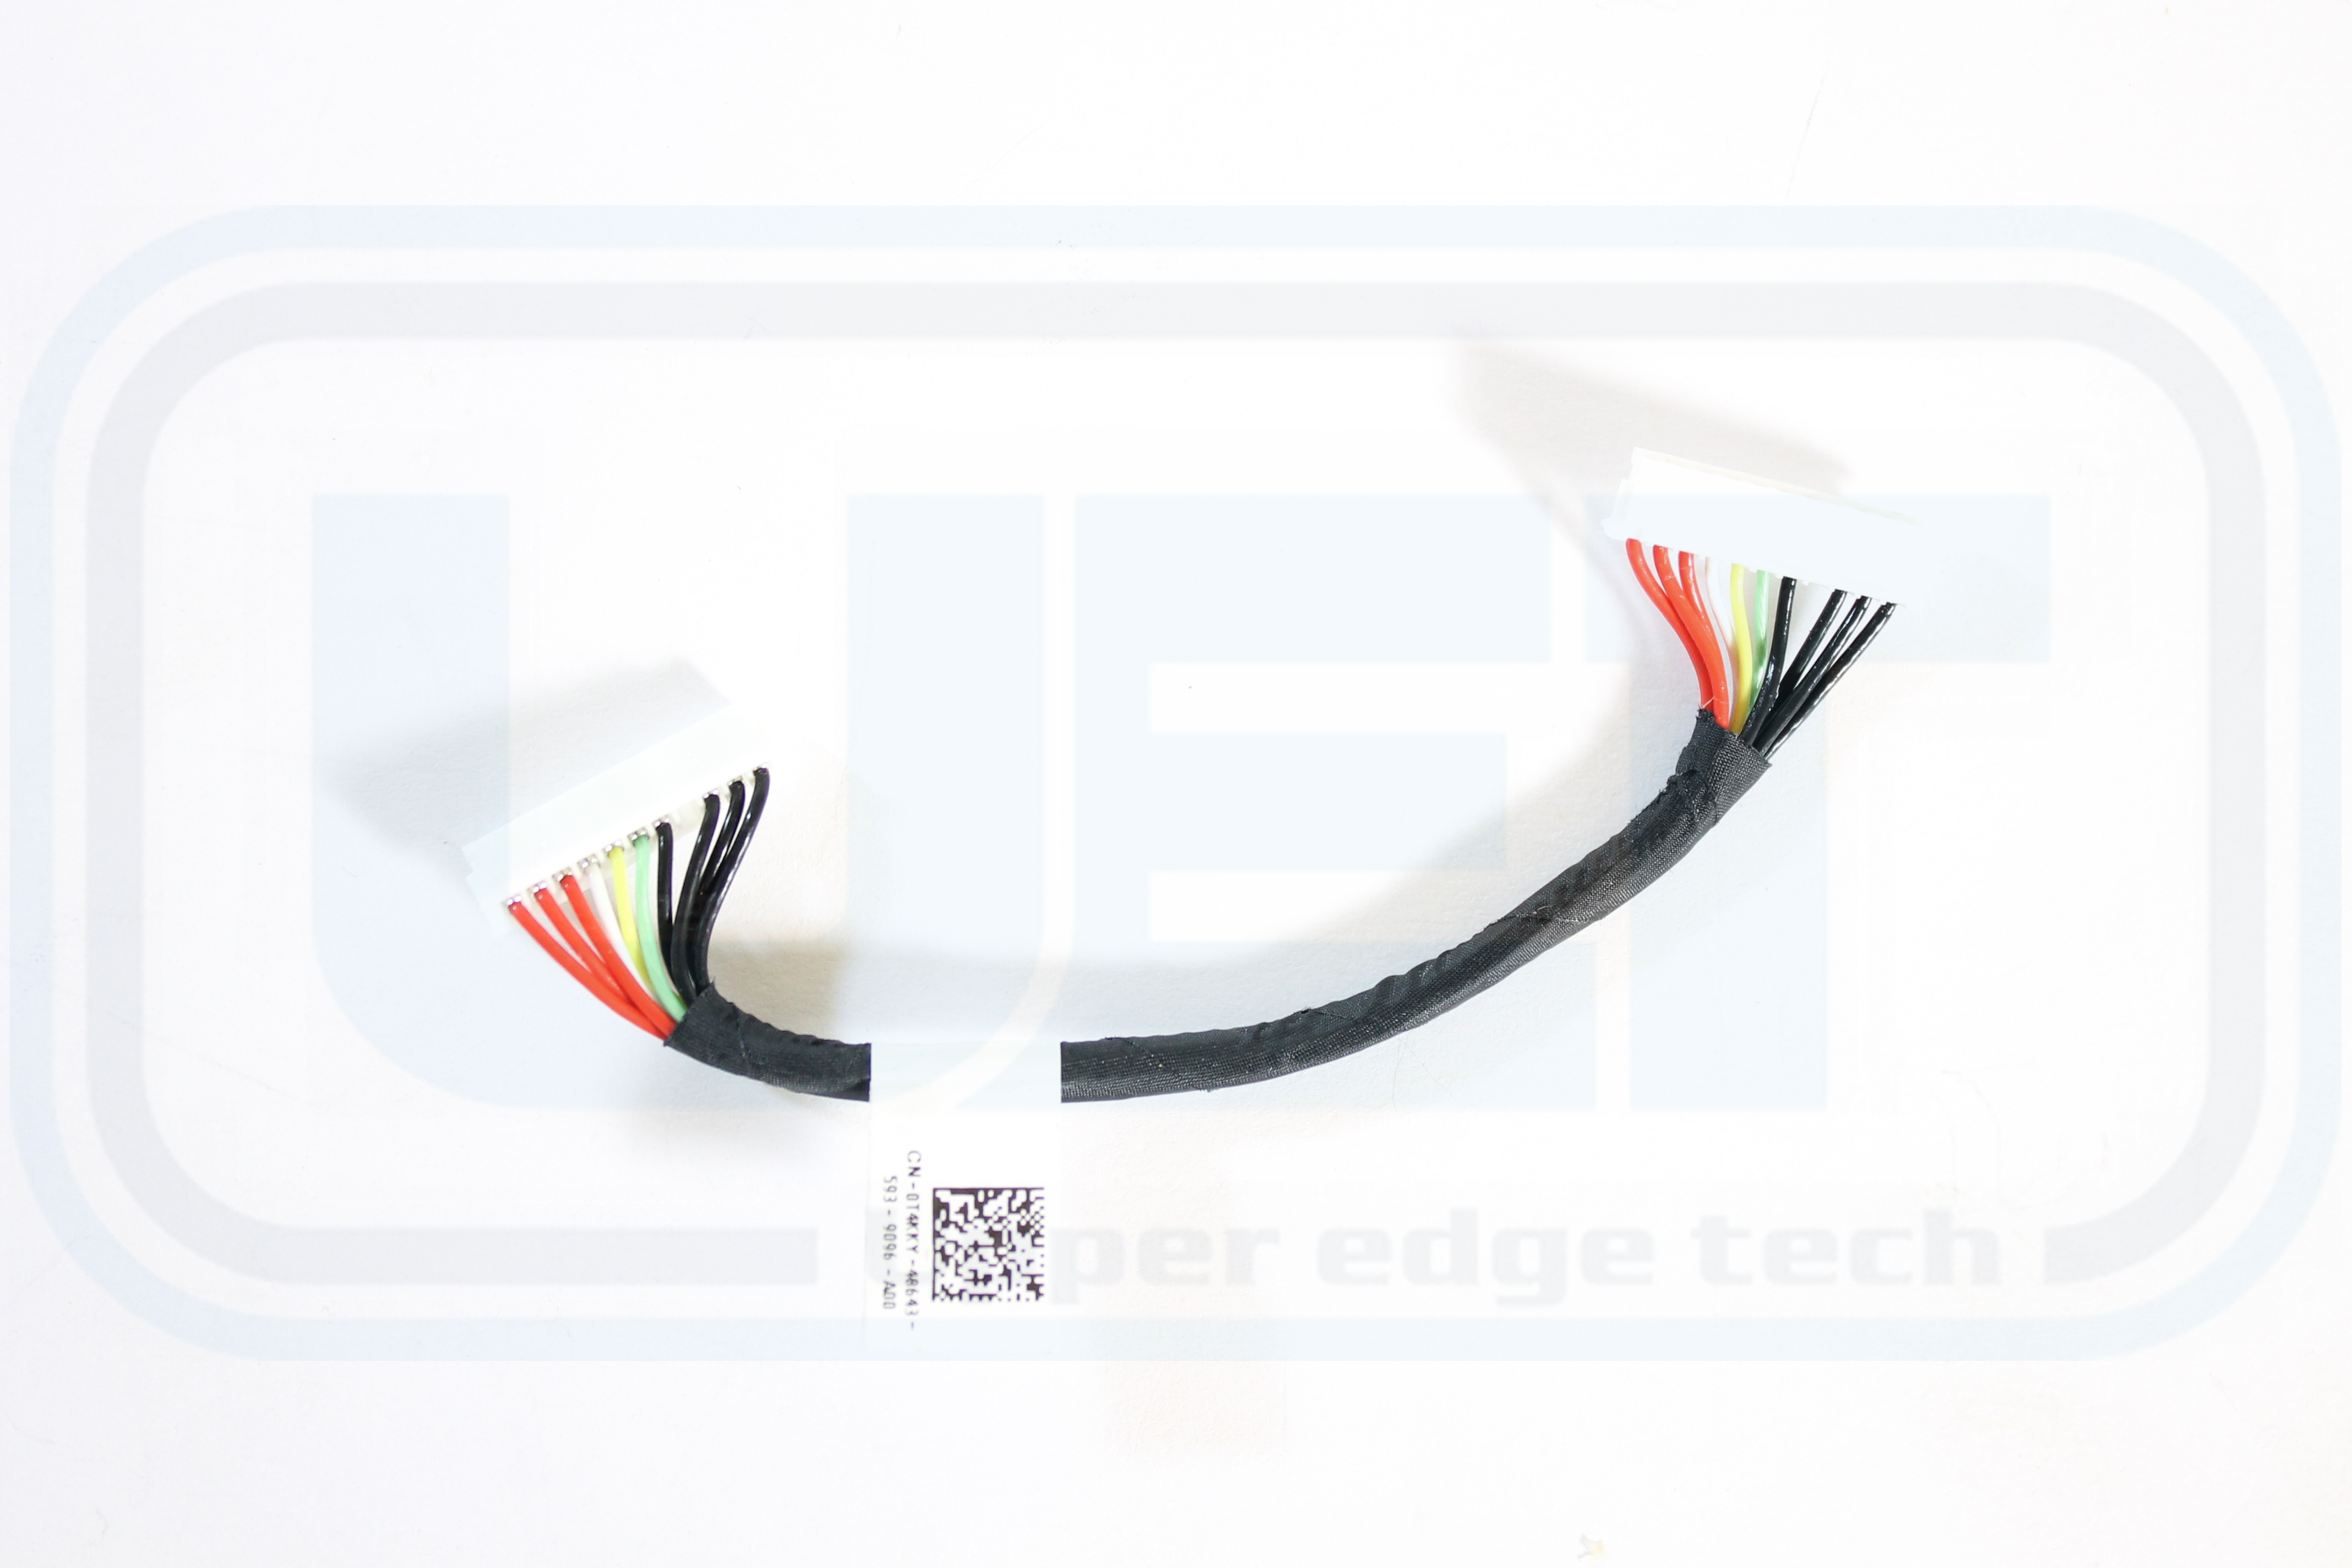 Dell Inspiron 7559 T4KKY Battery Connection Cable